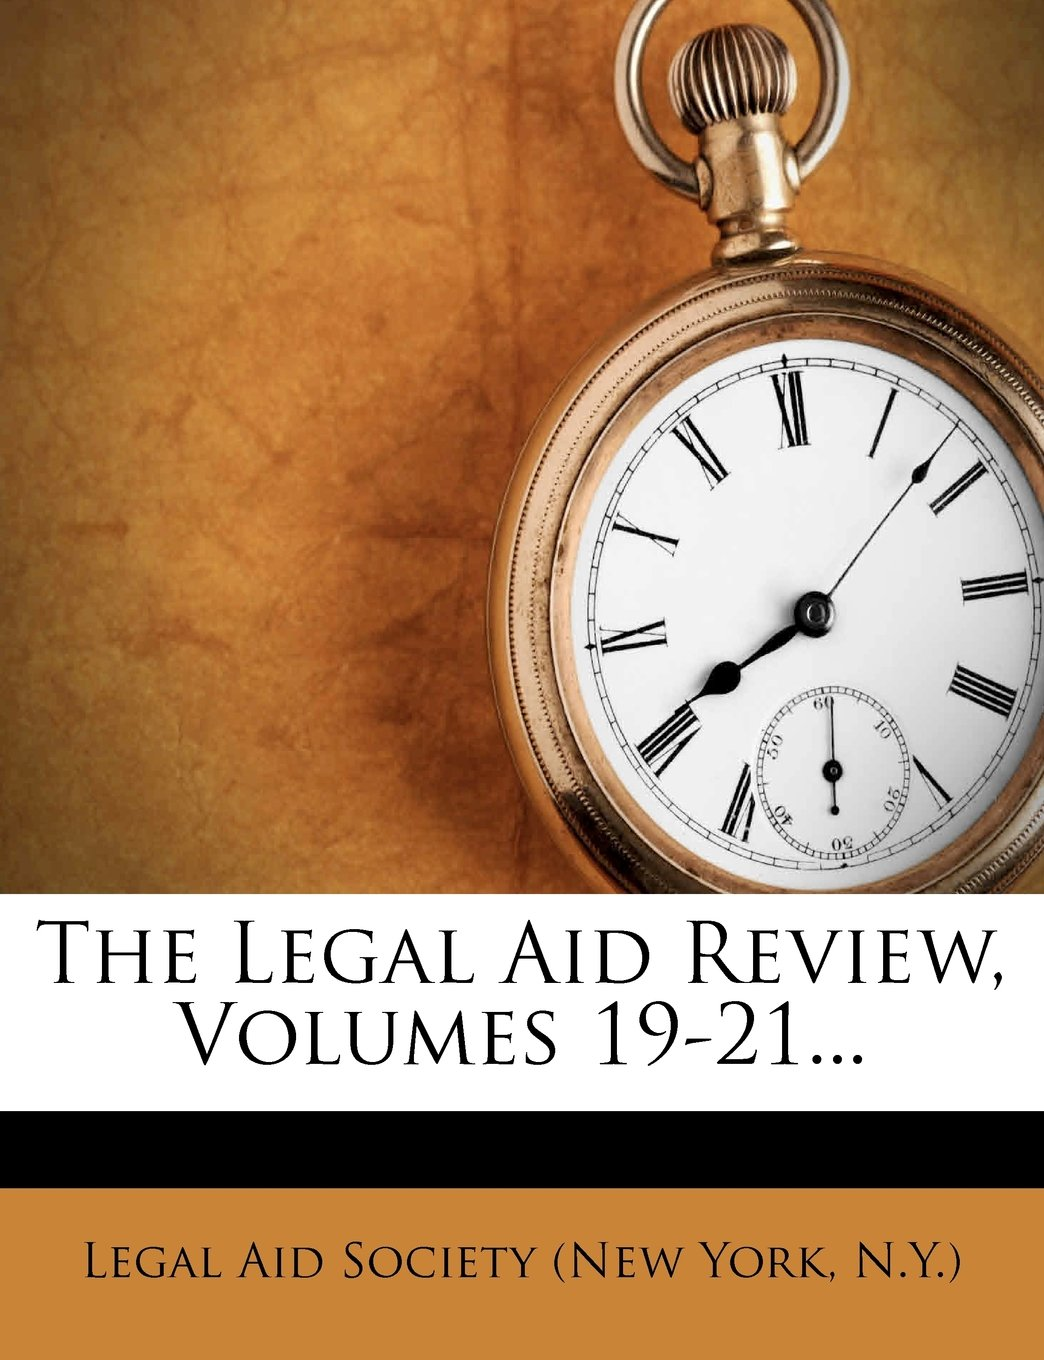 The Legal Aid Review, Volumes 19-21... pdf